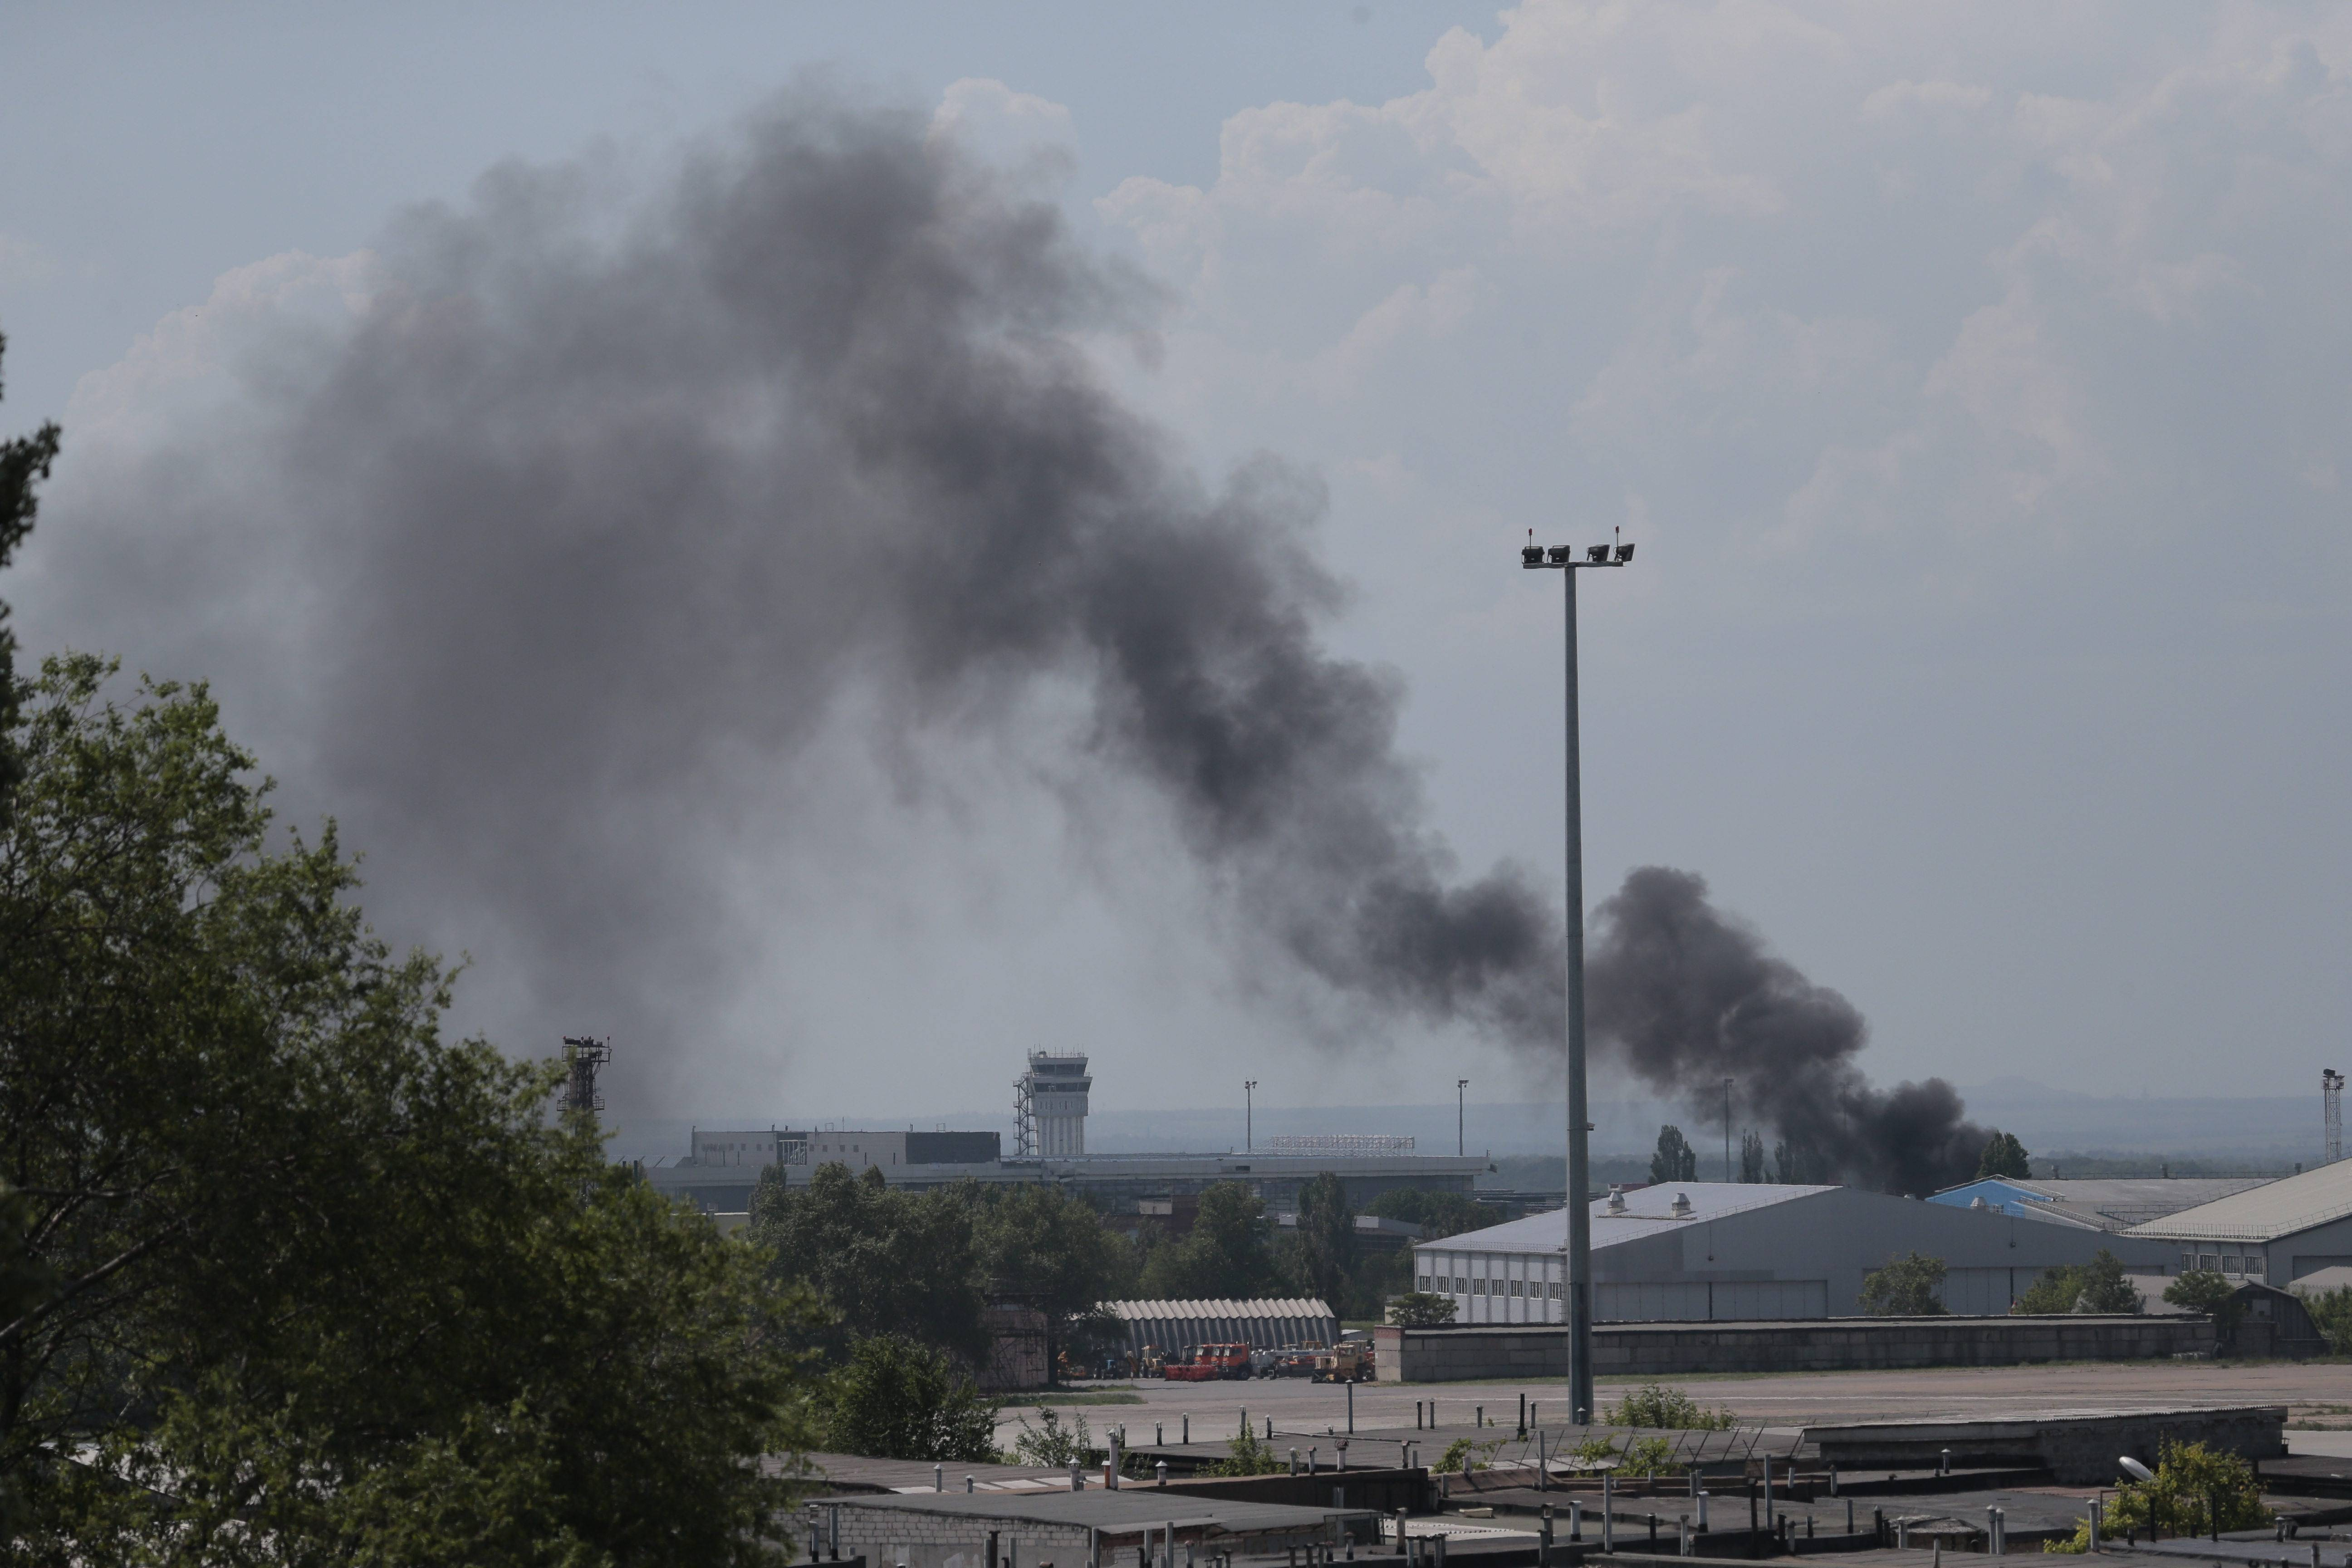 Smoke rises at the airport outside Donetsk, Ukraine, Monday, May 26, 2014. Ukraine's military launched airstrikes Monday against the separatists who had taken over the airport in the eastern city of Donetsk, suggesting that fighting in the east is far from over.